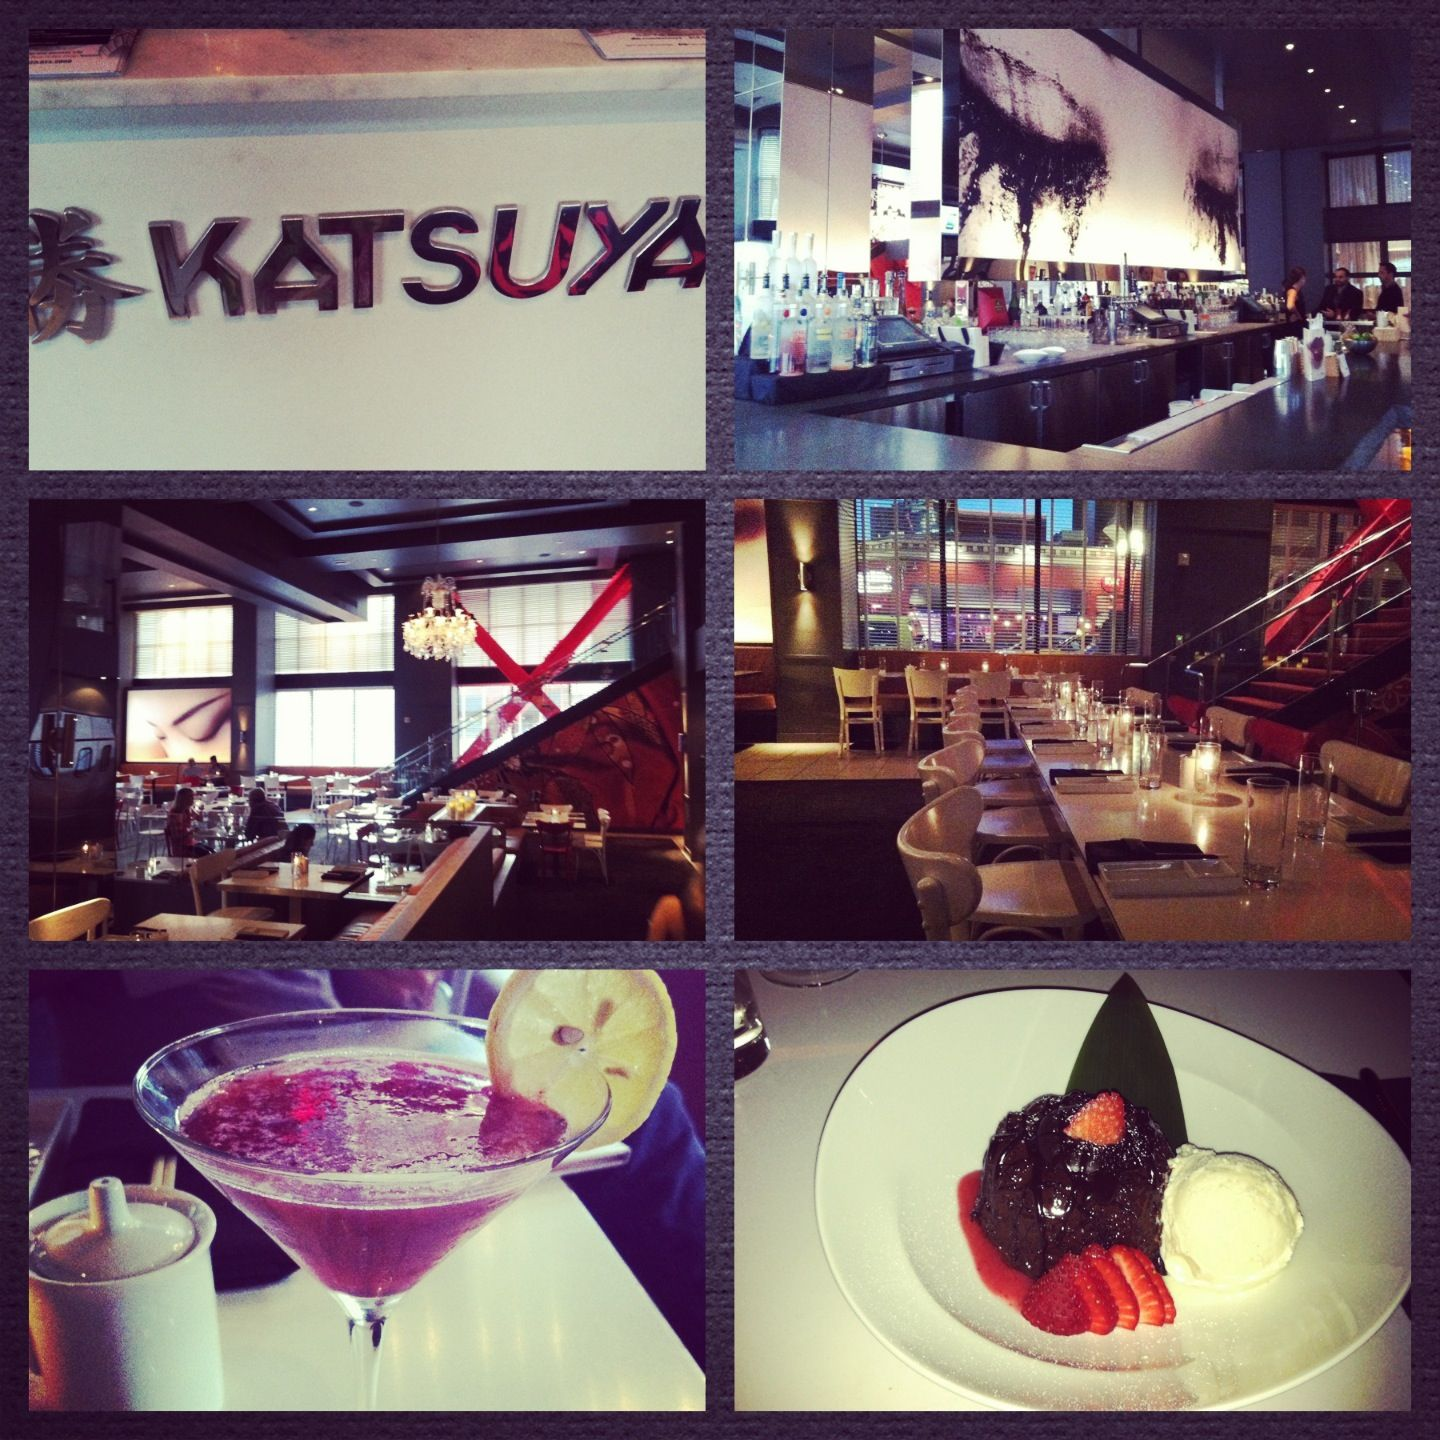 Katsuya SD! Love this place! Amazing sushi love the yellowtail sashimi with jalapeño and the salmon with caviar!! Muddled blackberry cocktail with lavender syrup is phenomenal! Great ambiance!